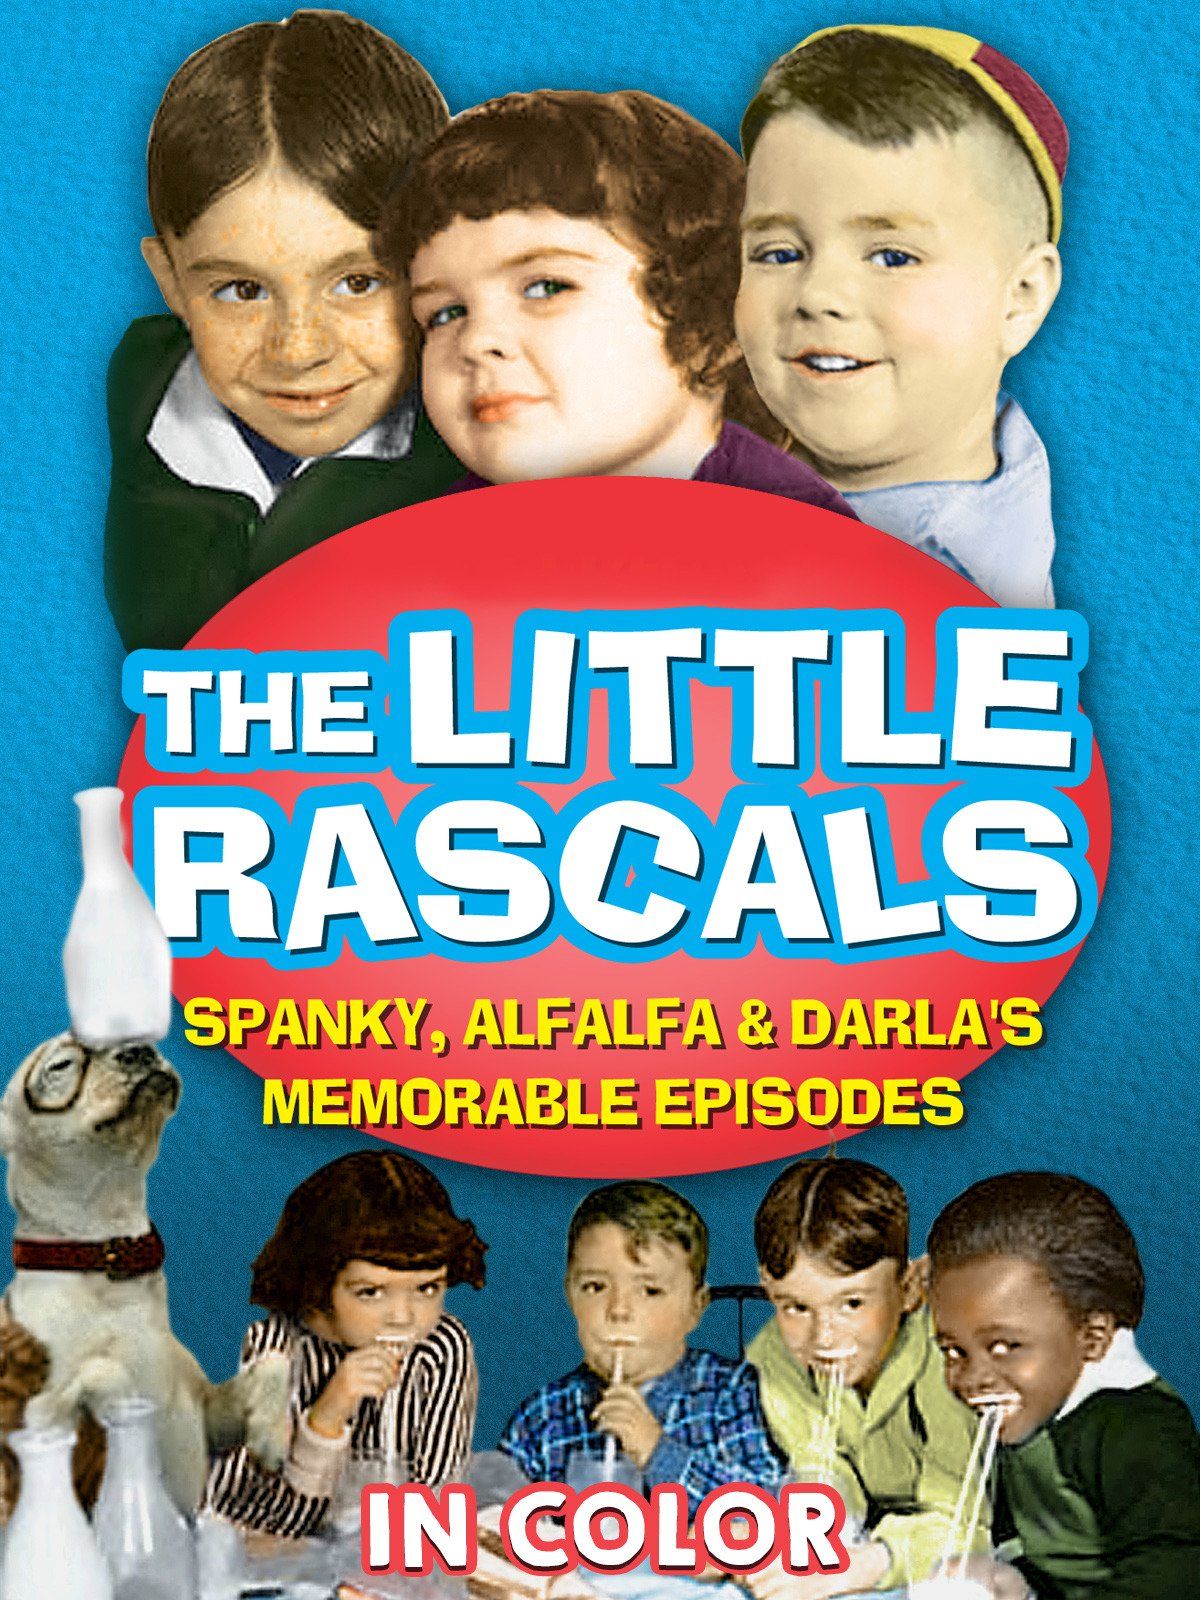 Amazon.com: The Little Rascals Spanky, Alfalfa, Darla\'s Memorable ...